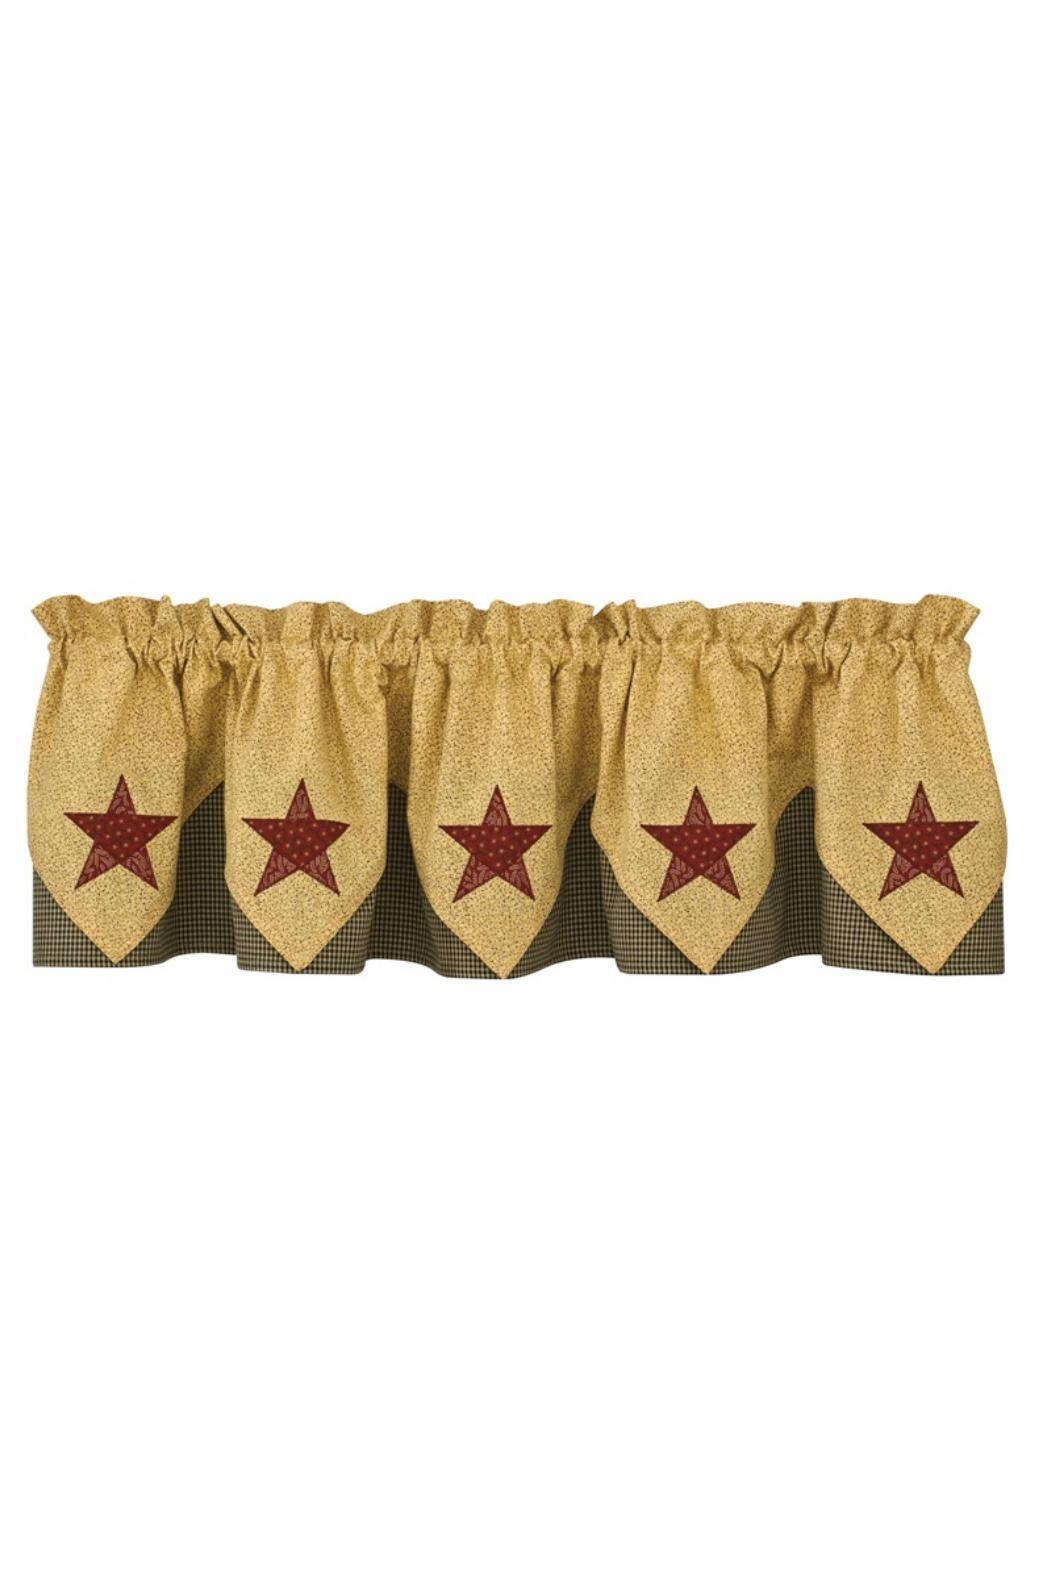 Park Designs Country Star Valance - Main Image